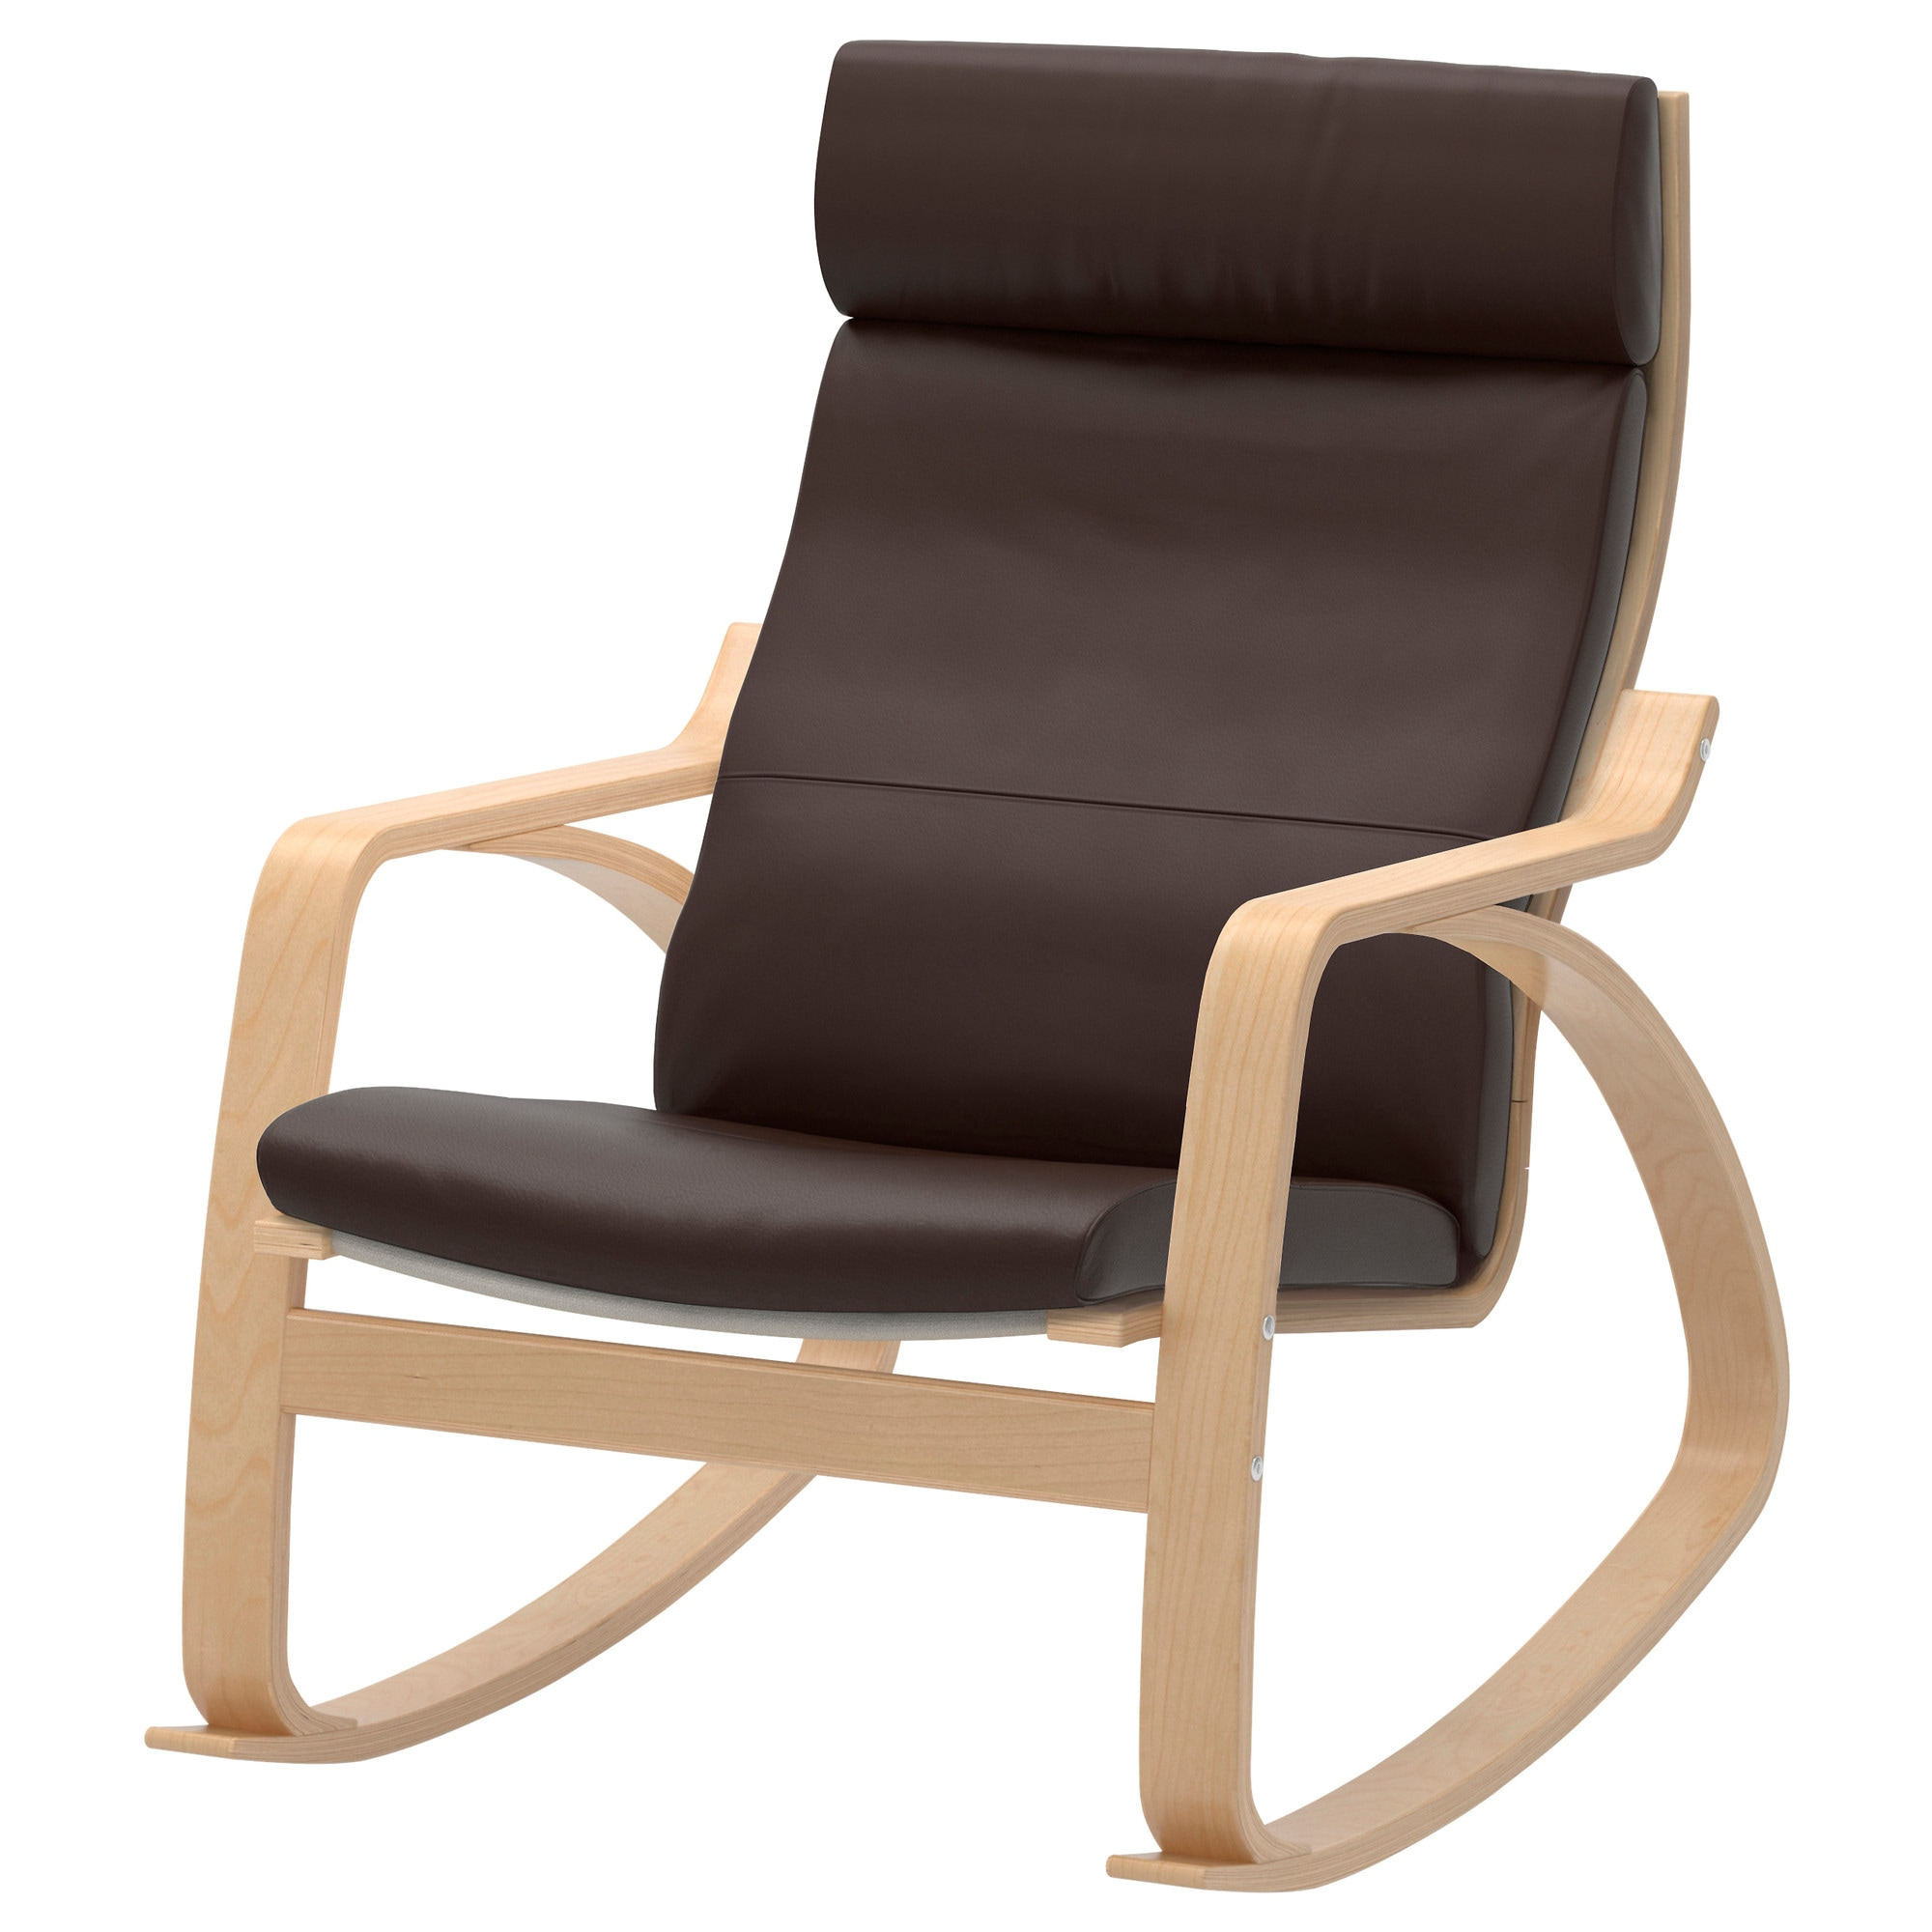 Exceptionnel POÄNG Rocking Chair   Glose Black   IKEA